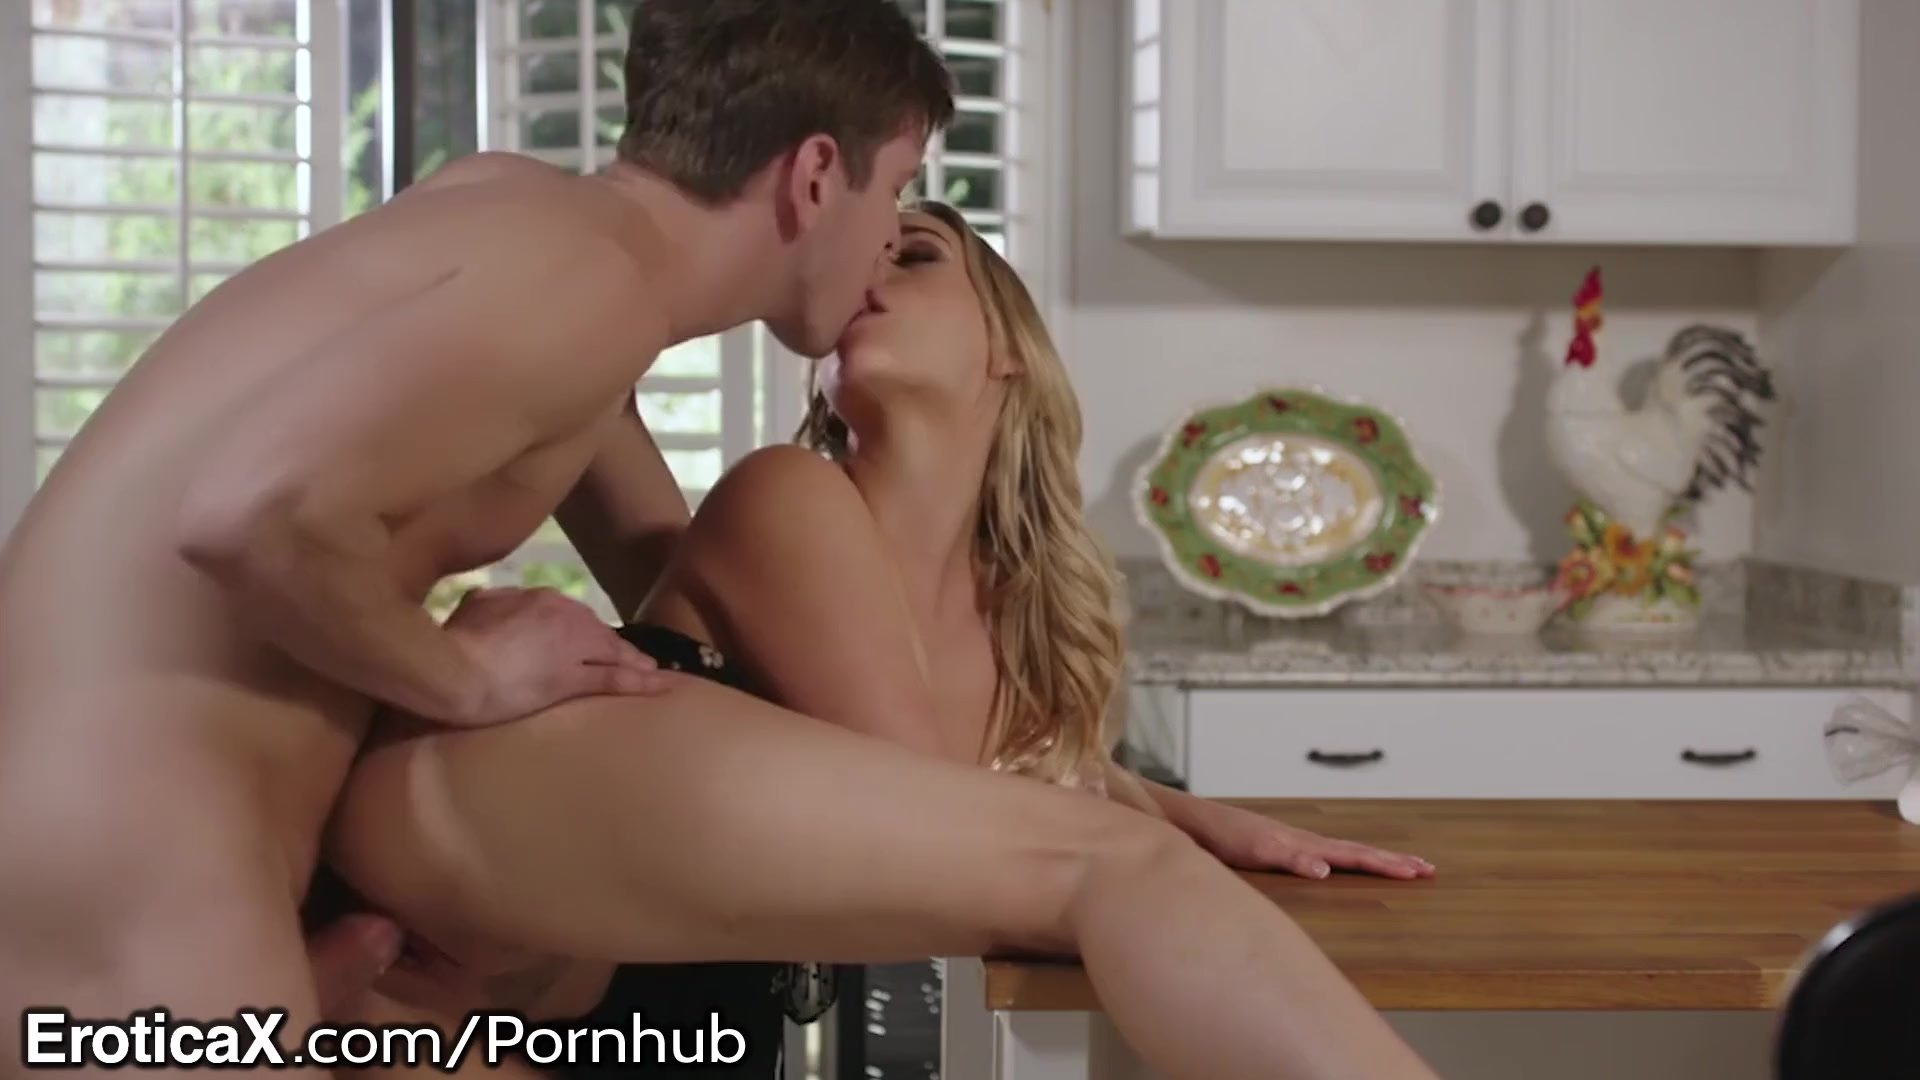 EroticaX Kitchen Counter Sex With Sexy Blonde Girl Mia Malkova